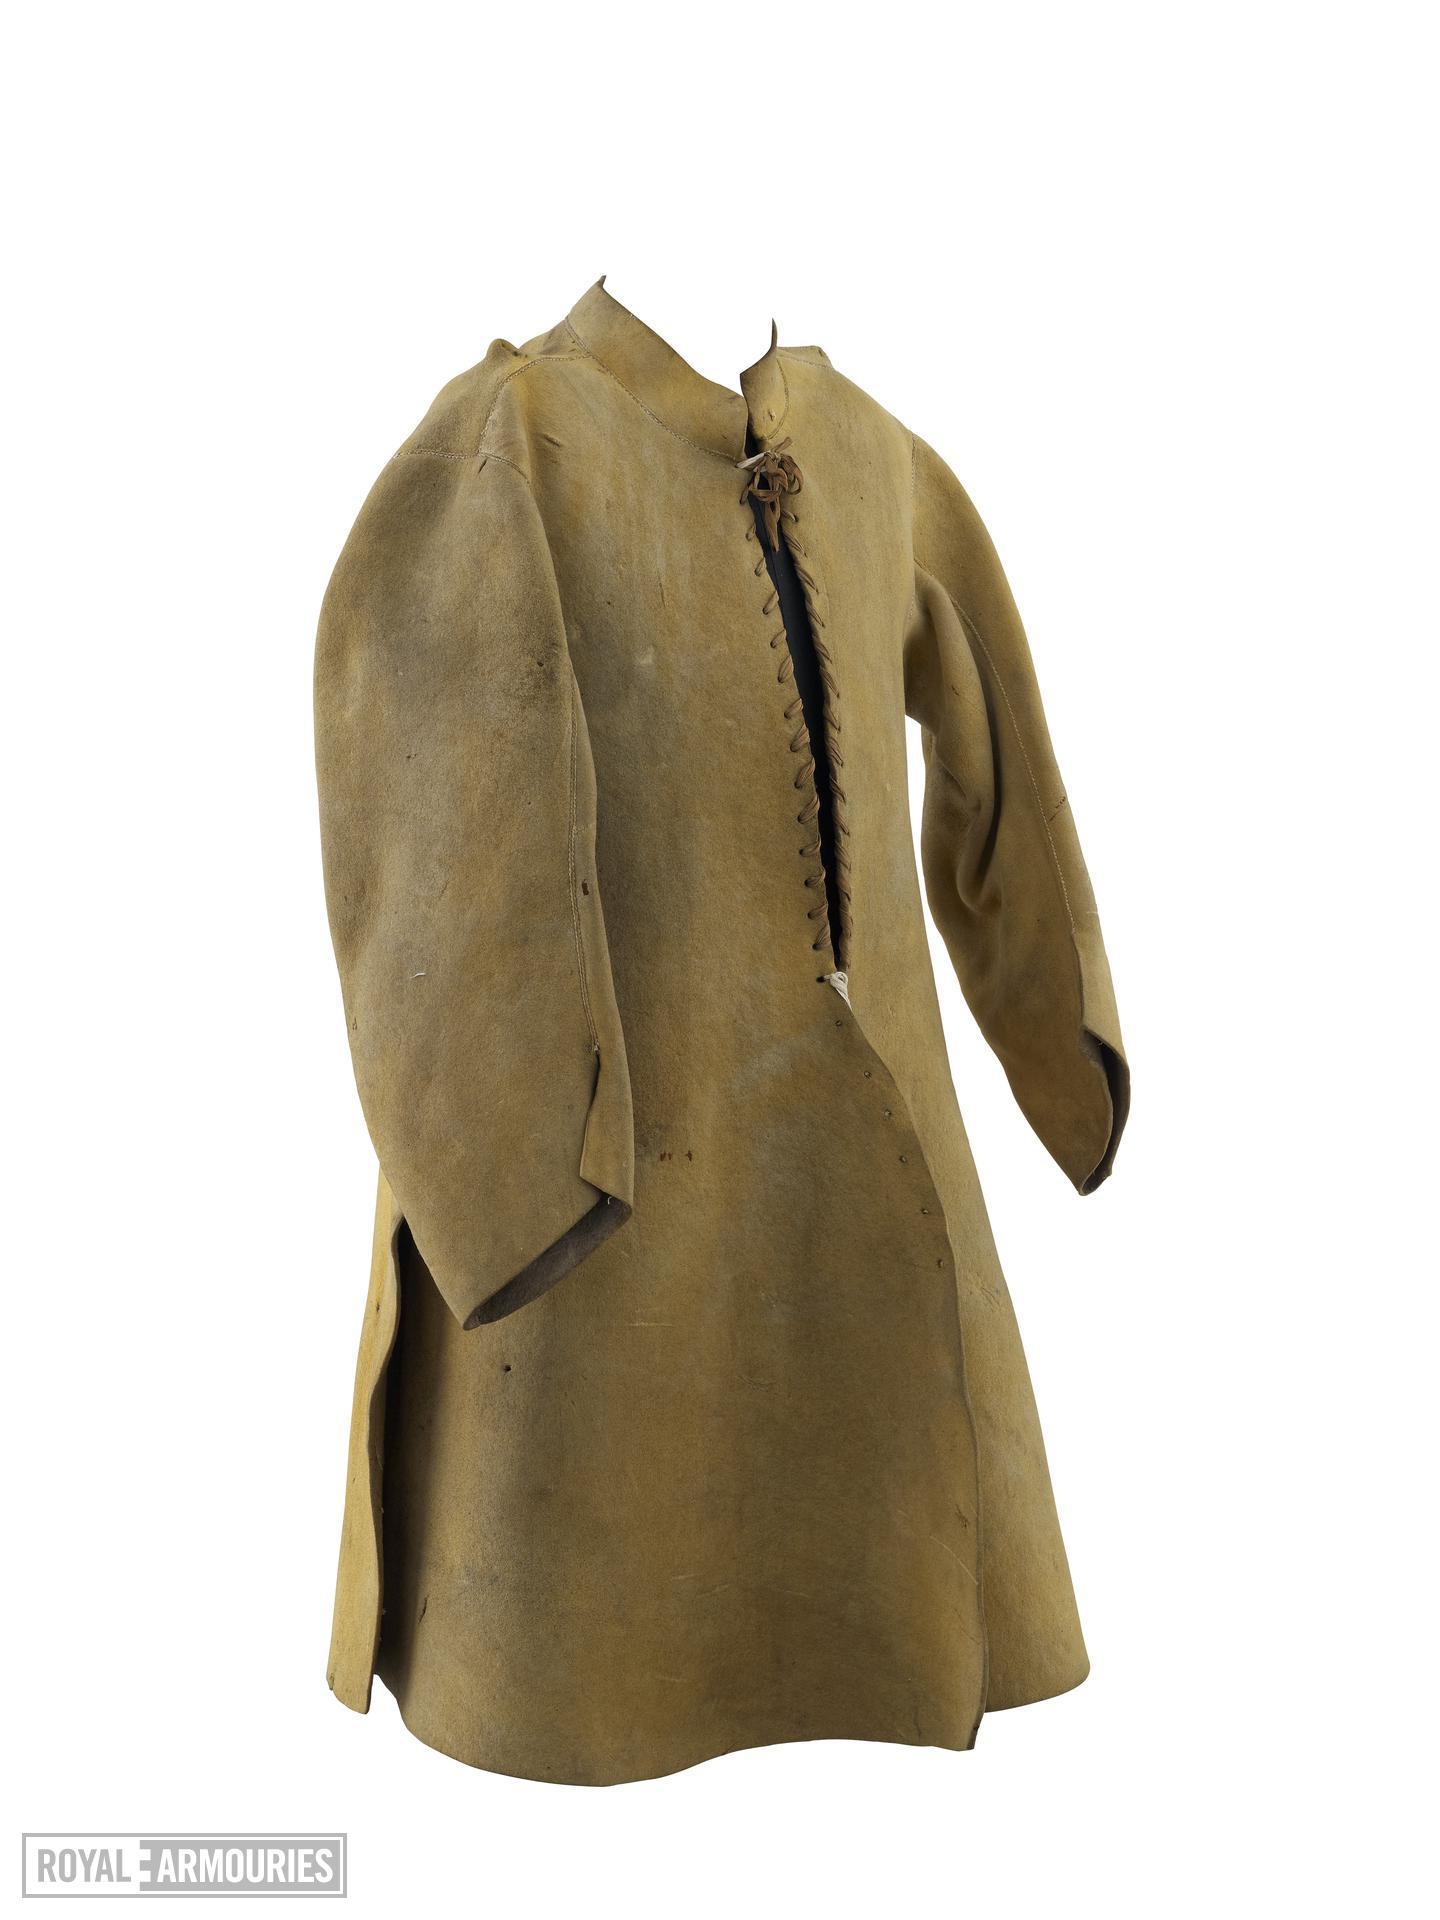 Buff coat For a harquebusier. Littlecote collection